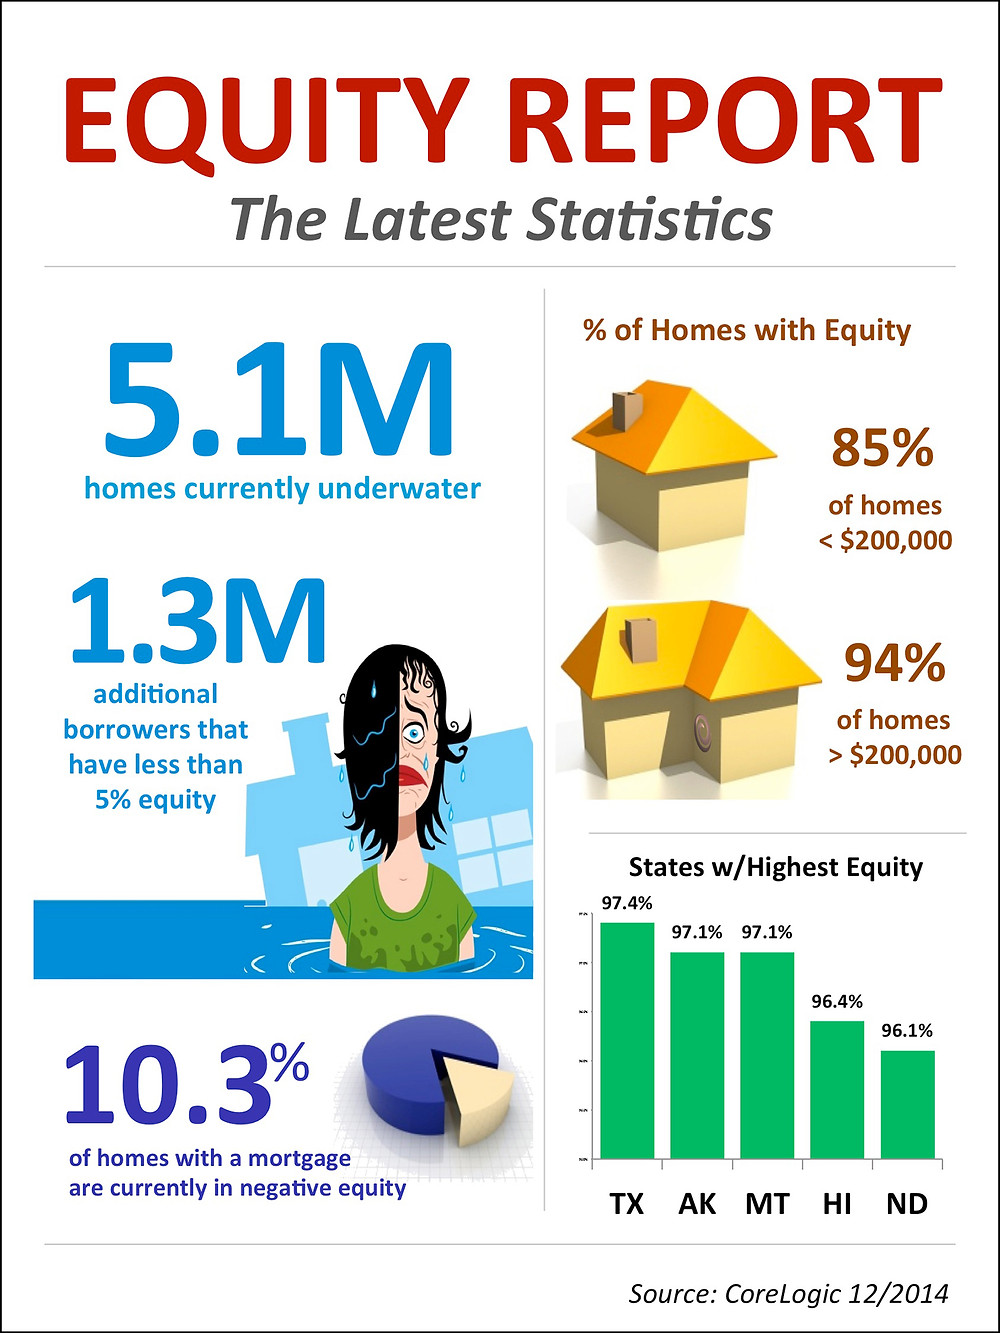 Equity Report Infographic   Simplifying The Market